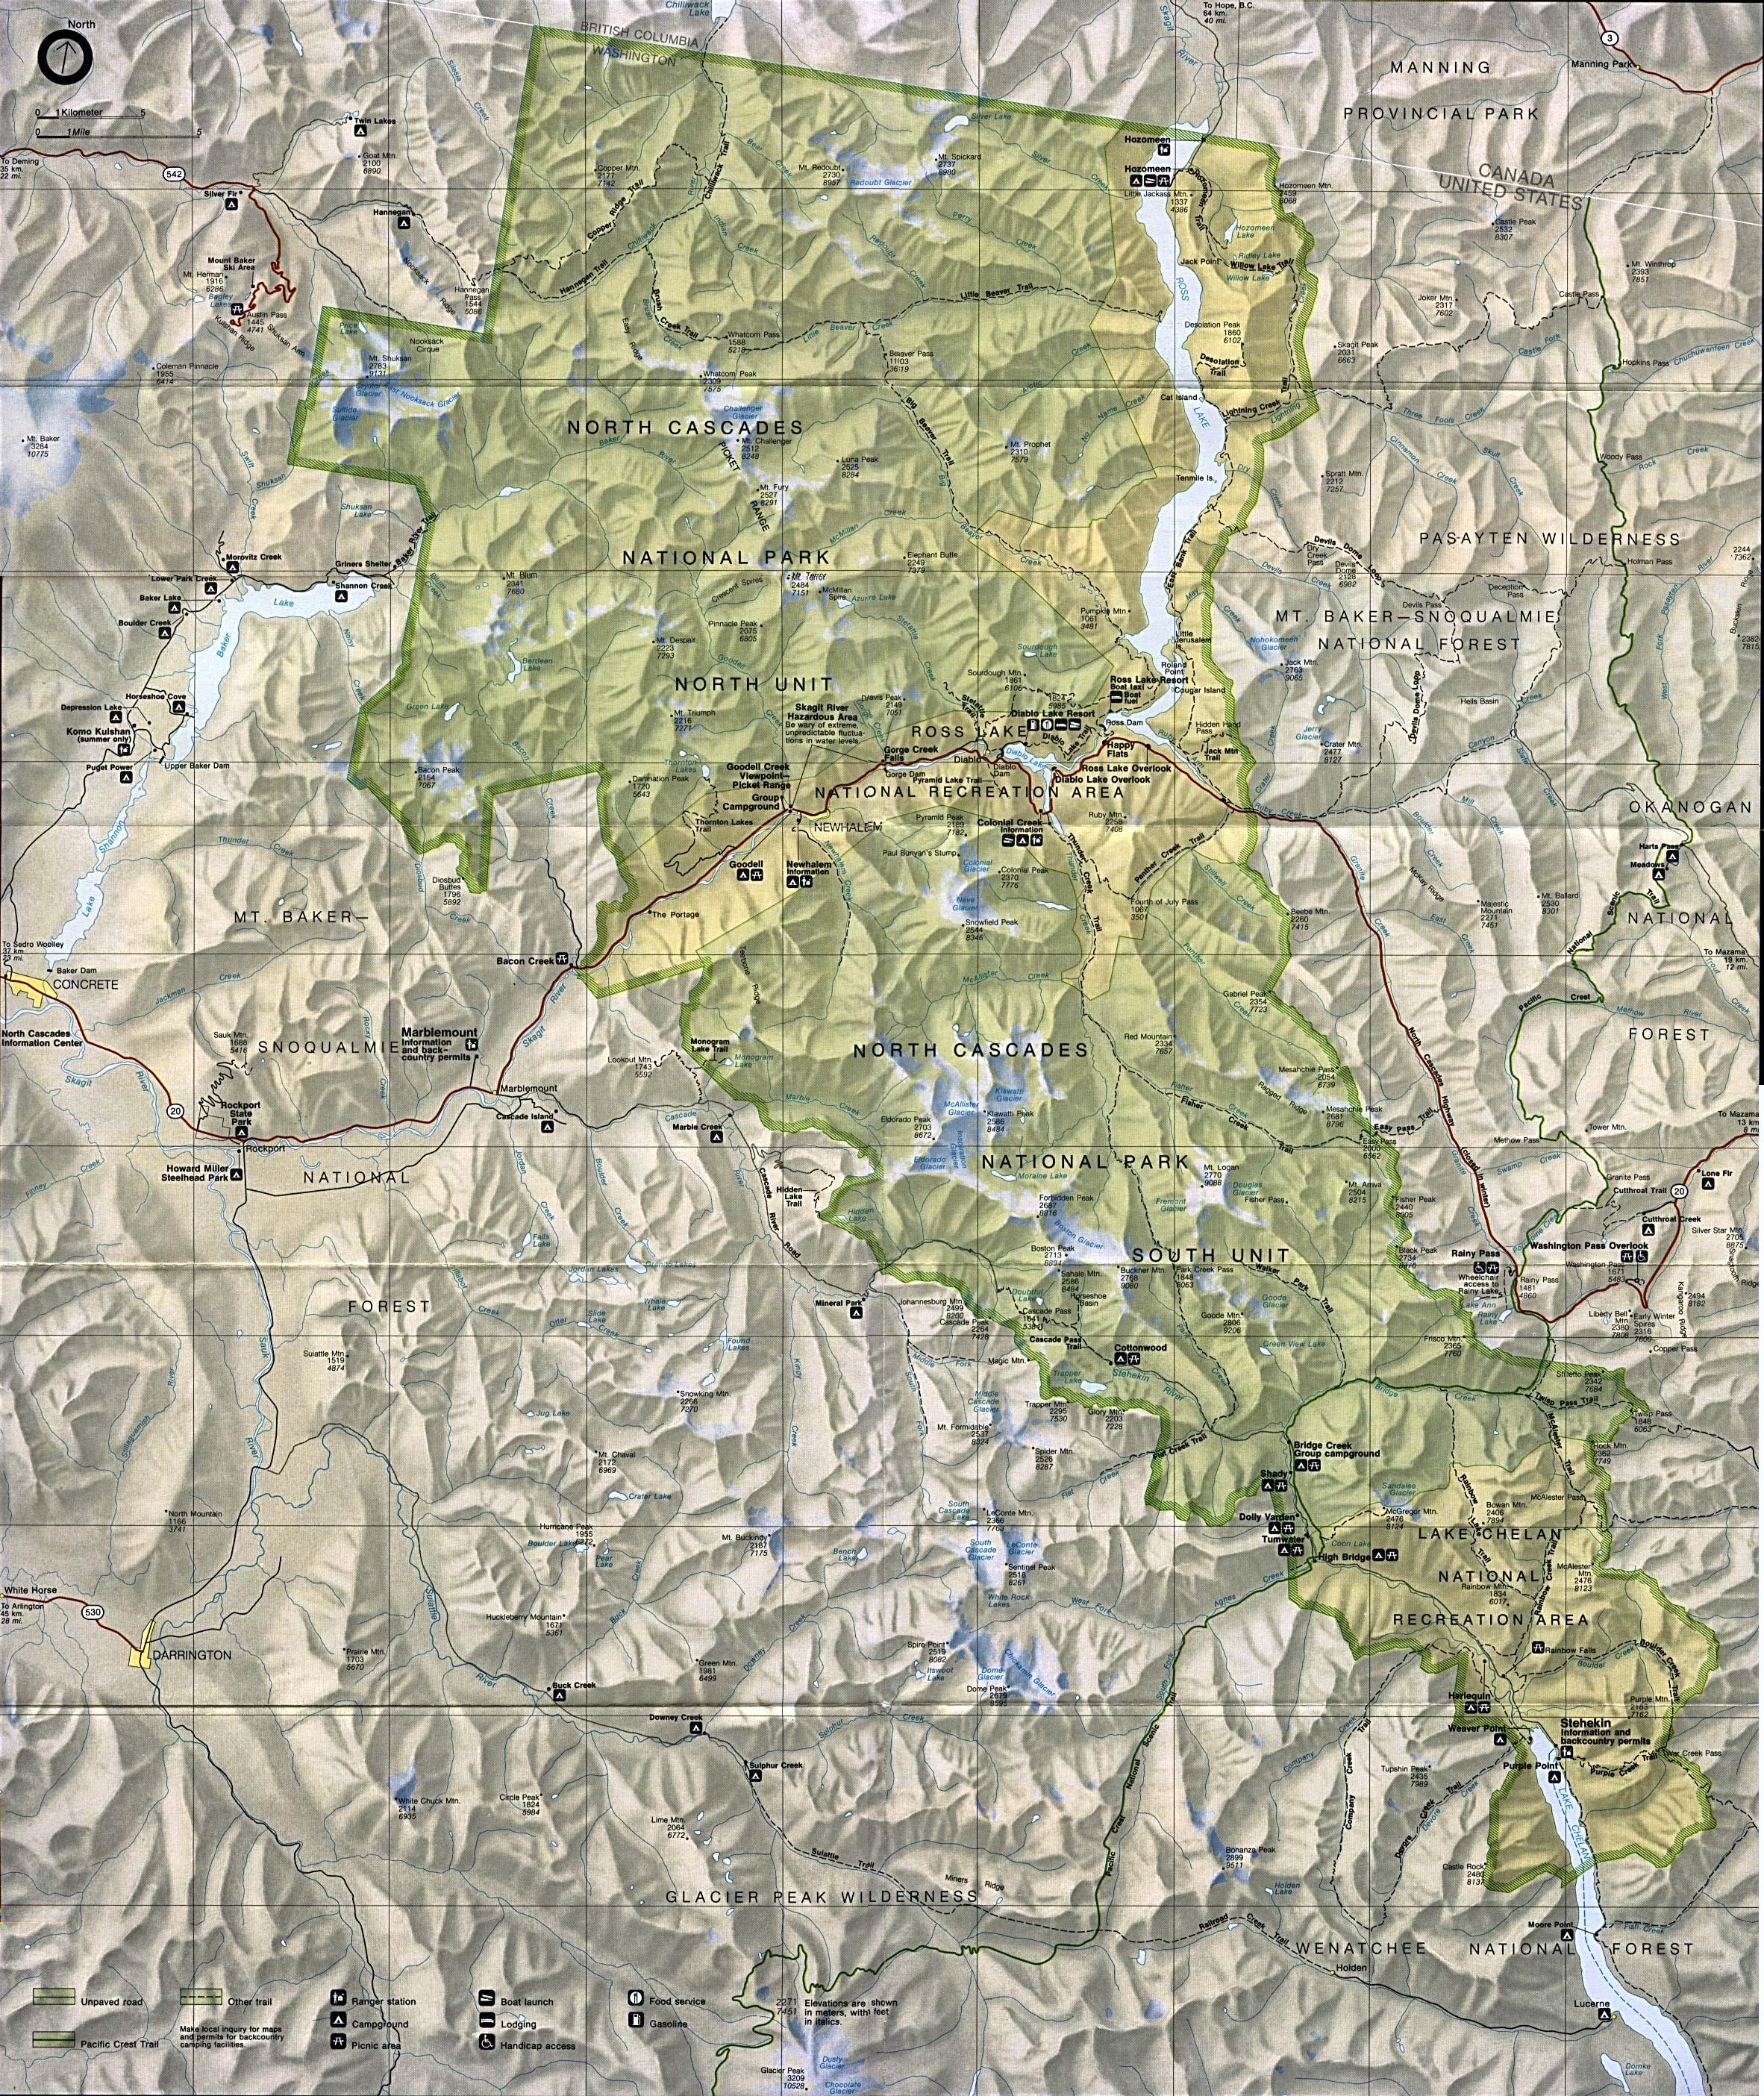 Up Travel Maps Of United States US National Parks Monuments - Map us parks